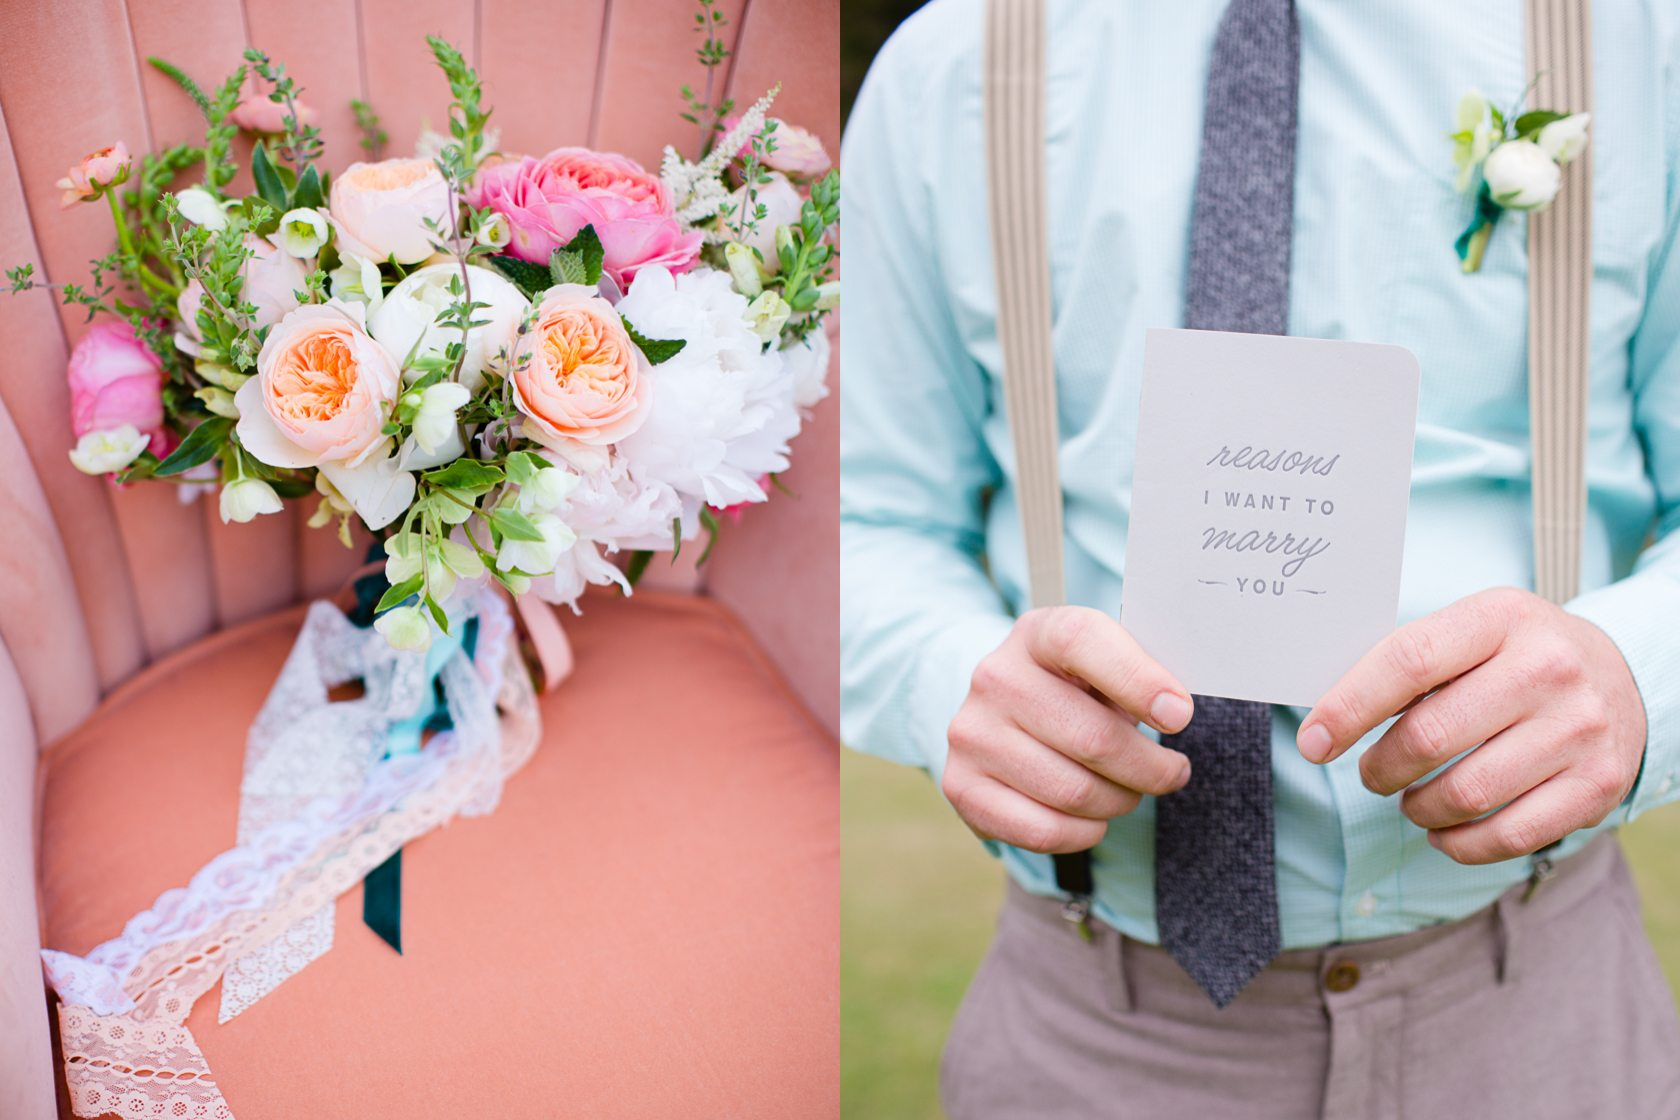 The_Printed_Palette_Wedding_at_Calamigos_Ranch_011.jpg